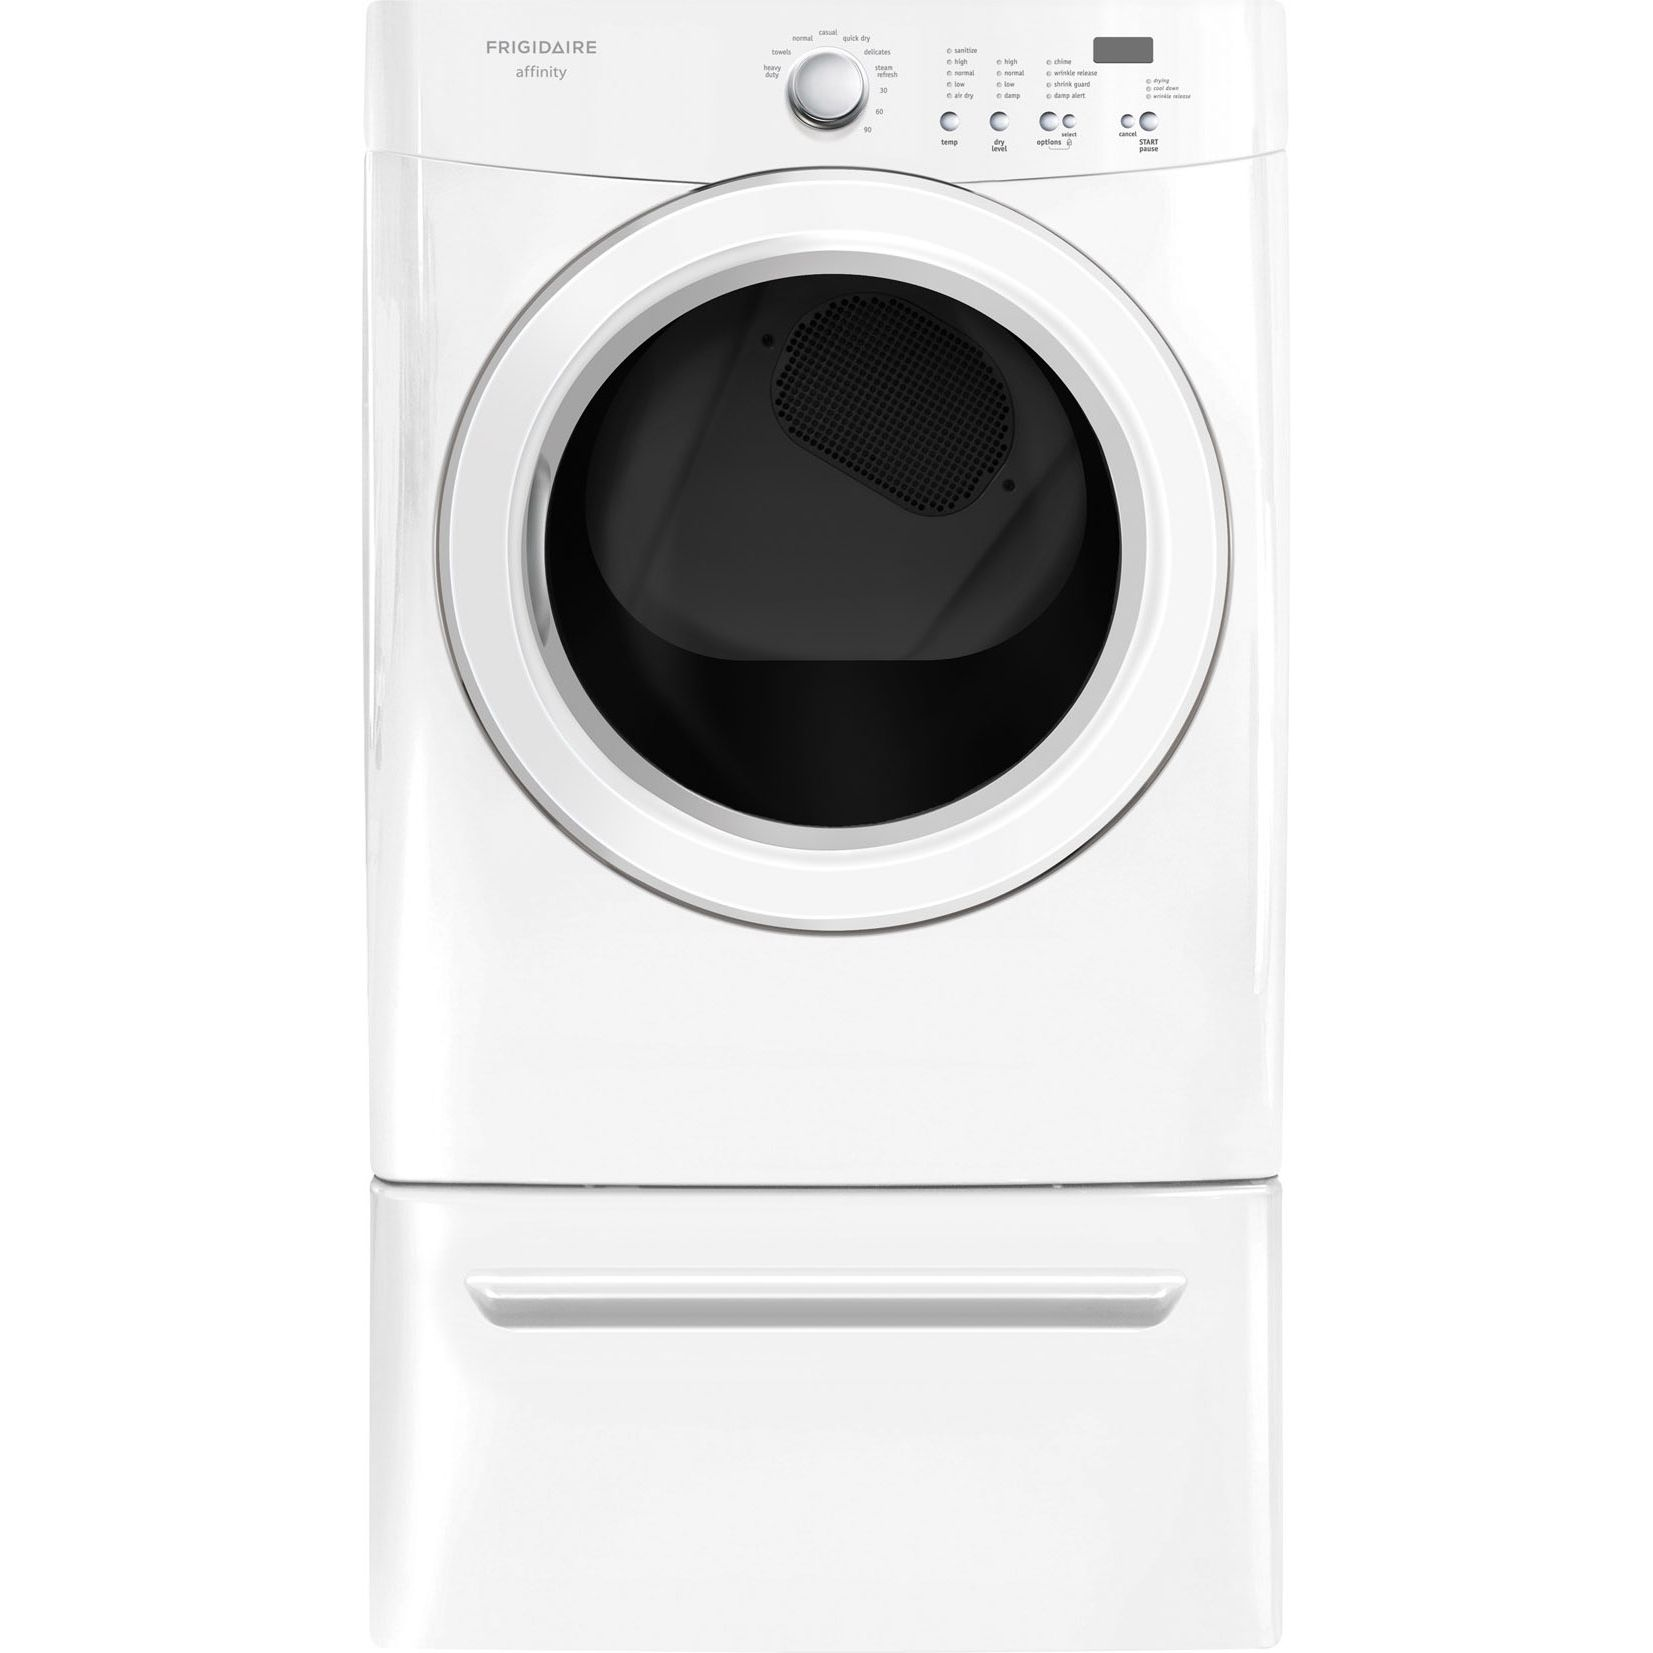 Frigidaire Affinity 7.0 cu. ft. Ready Steam™ Electric Dryer - White